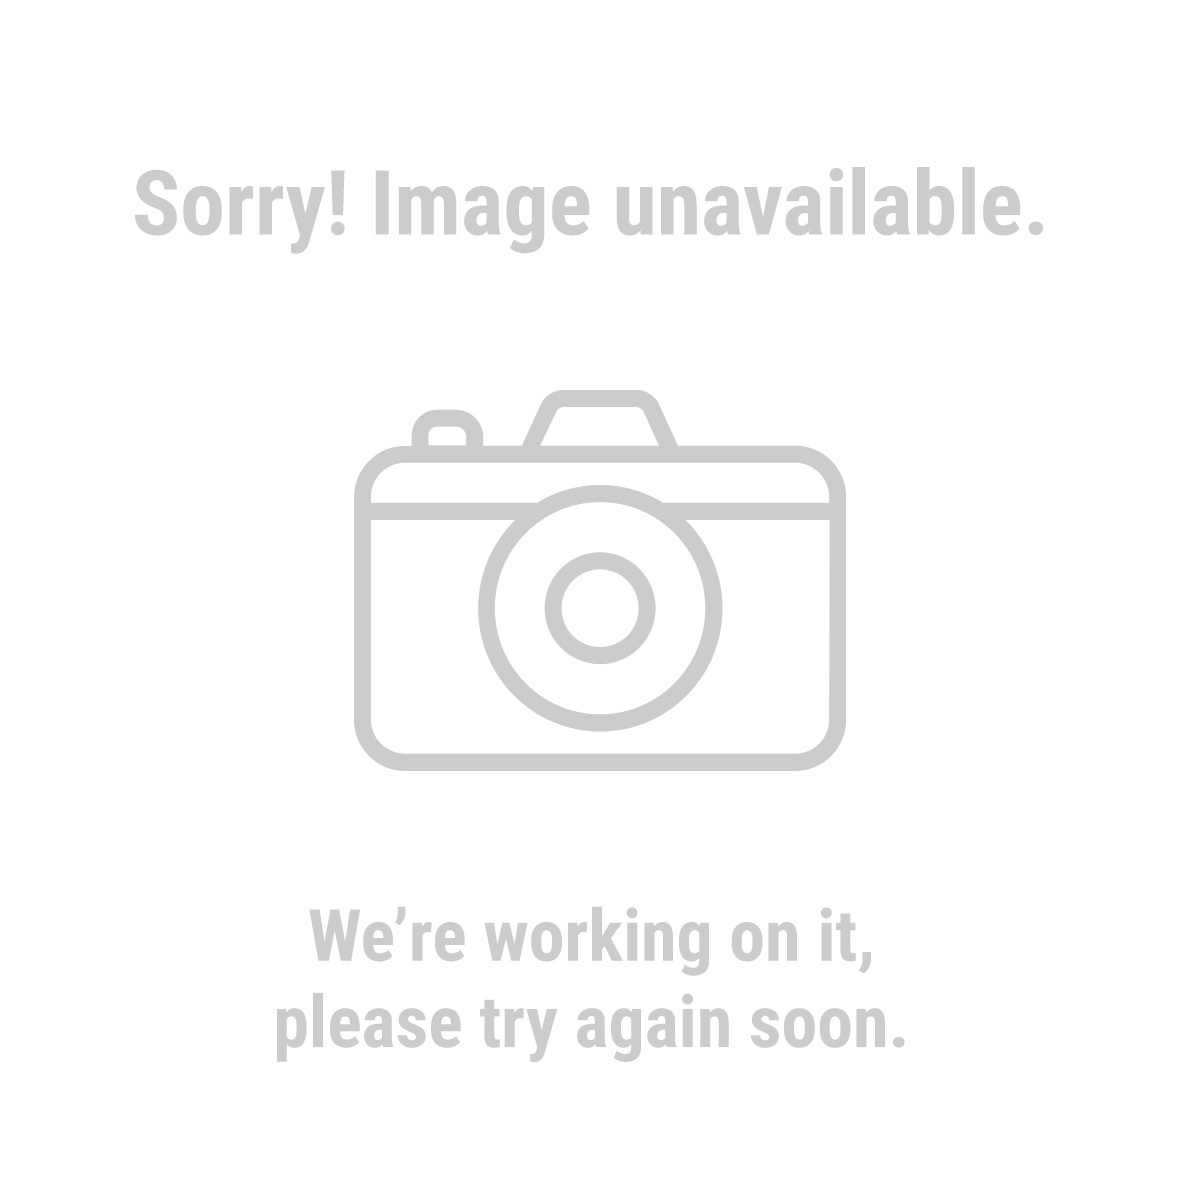 Predator Outdoor Power Equipment 61623 6.5 HP (212cc) 21 in. Brush Mower